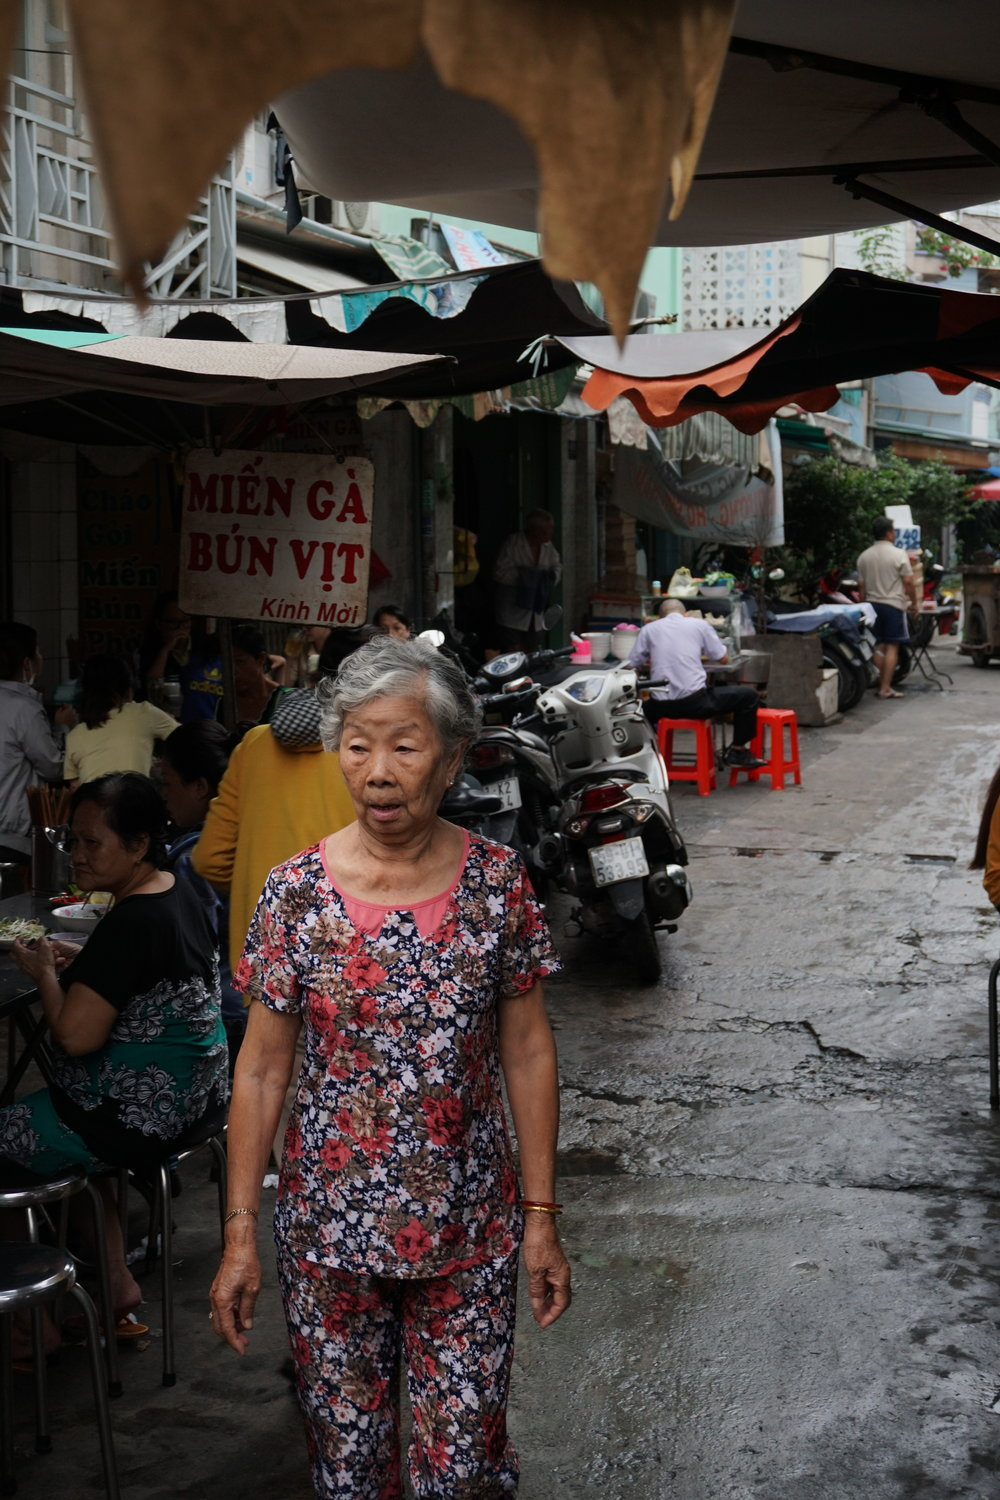 A woman strolls through a narrow alleyway.